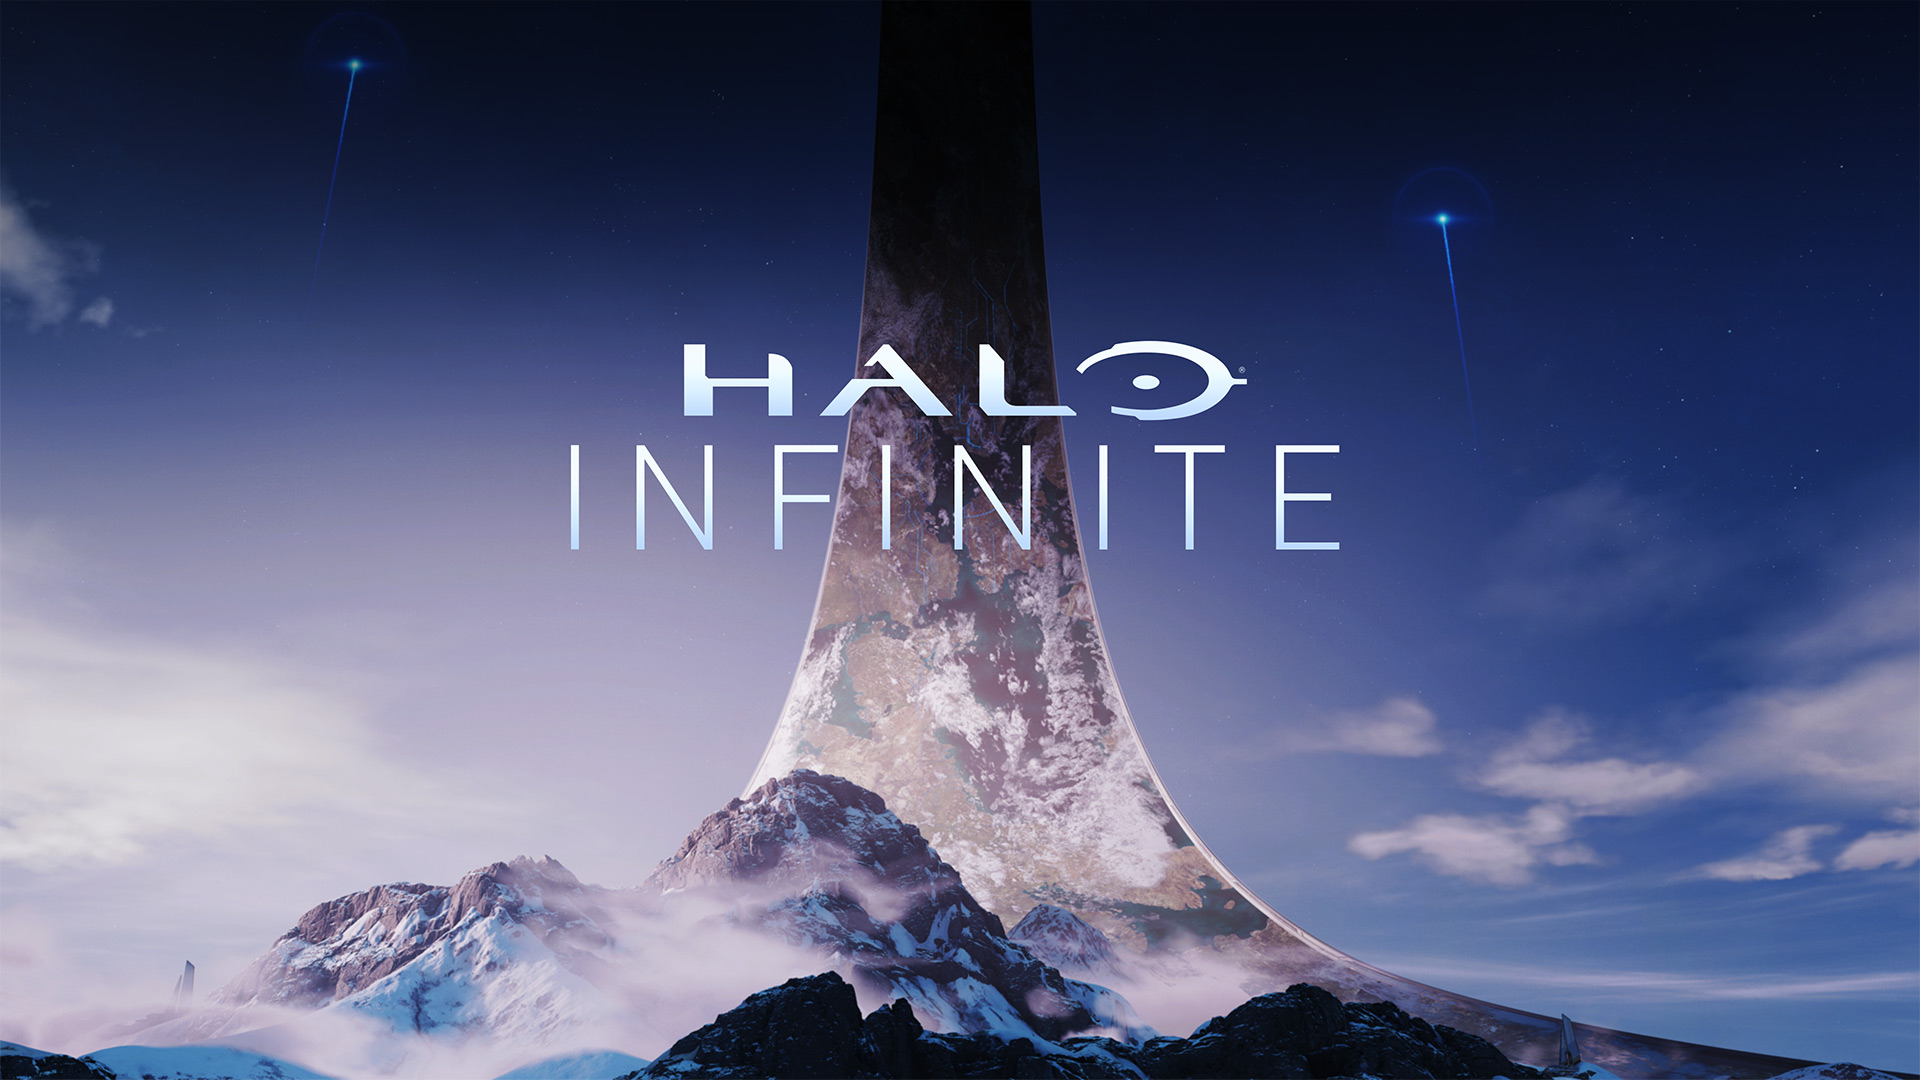 Halo Infinite – Key Art